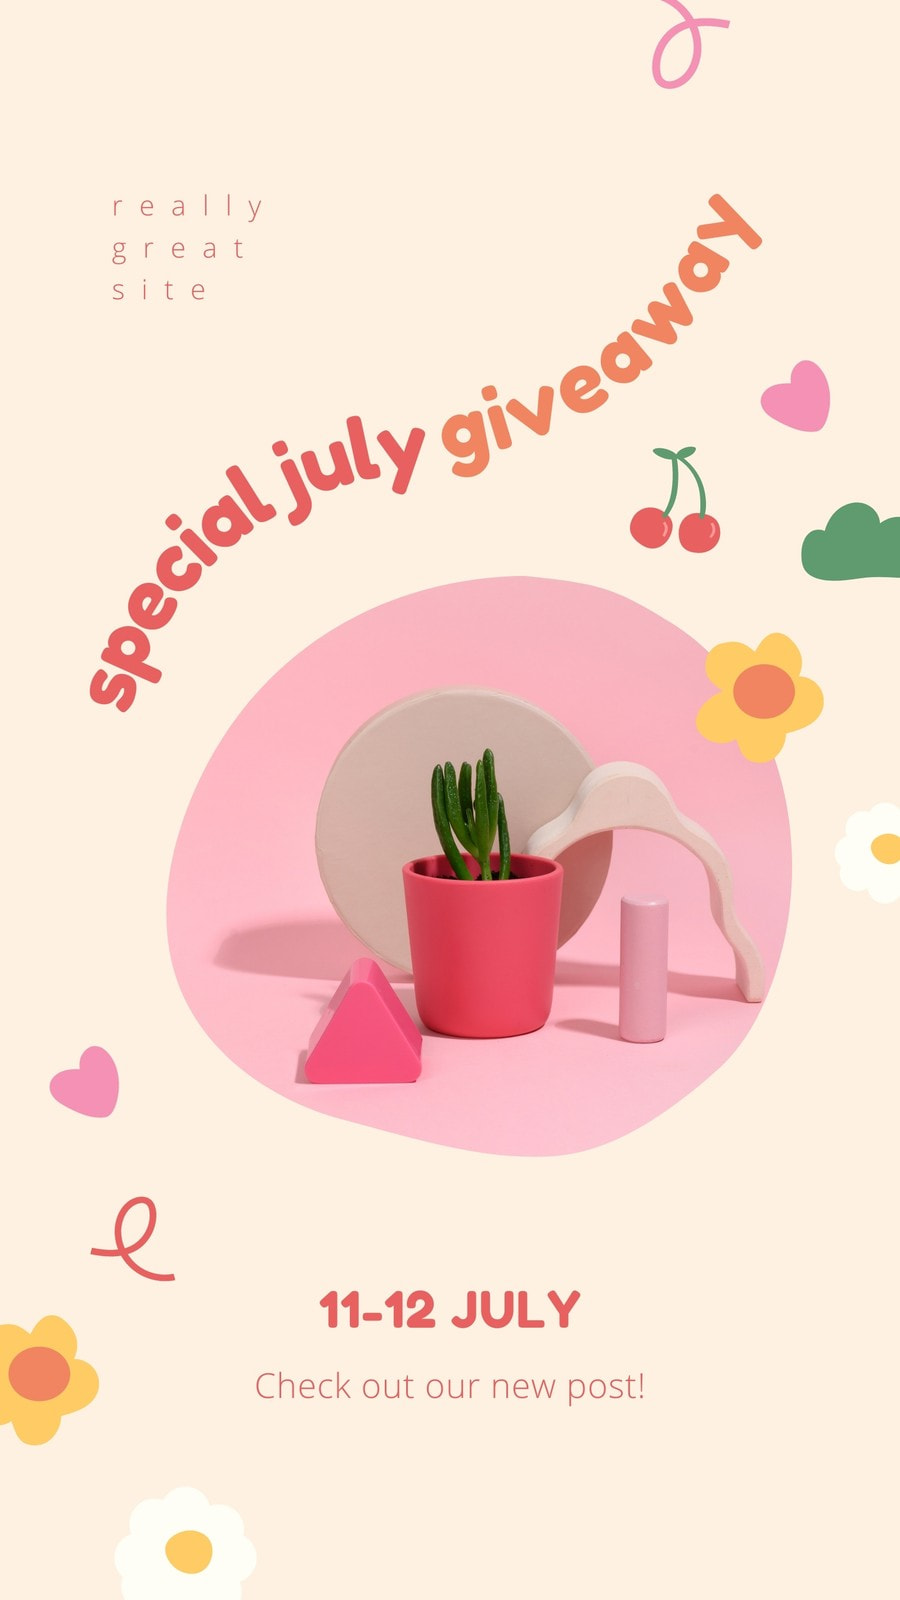 Colorful Cheeky Pink and Ivory Giveaway Promo Instagram Story